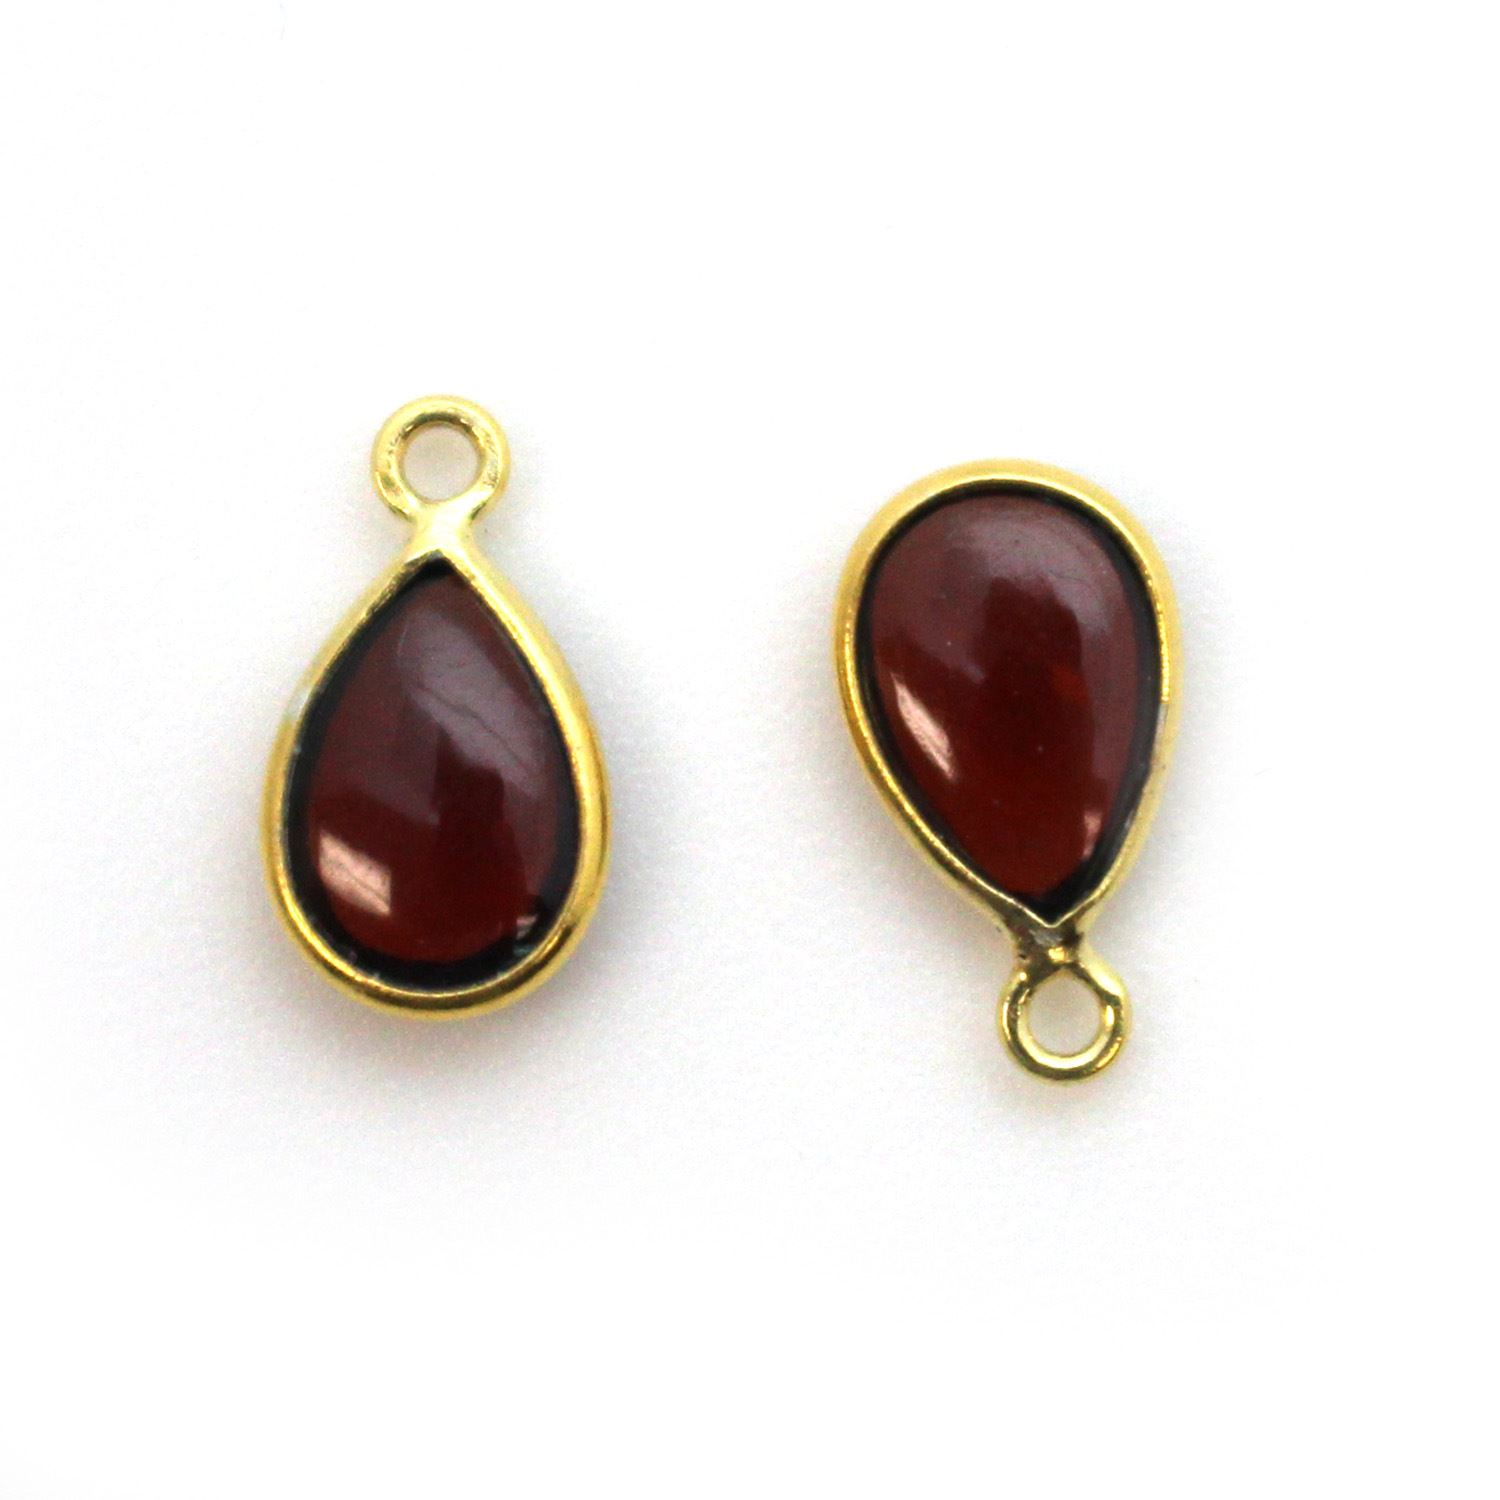 Bezel Charm Pendant - Gold Plated Sterling Silver Charm - Natural Garnet - Tiny Teardrop Shape